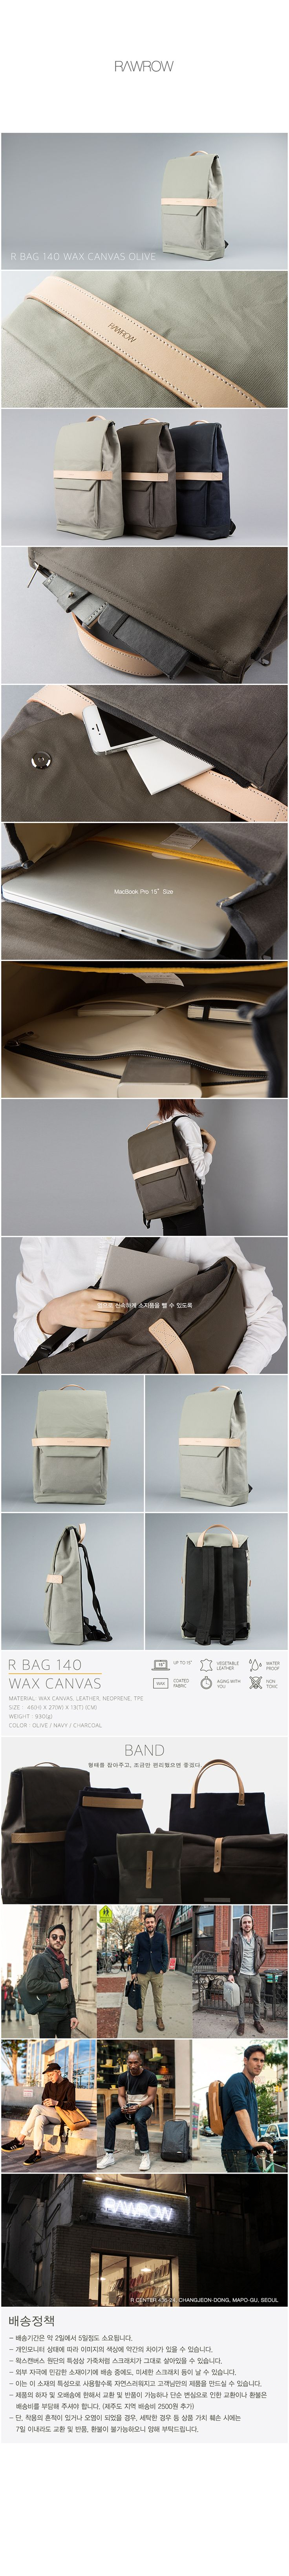 RAWROW - love their bags - this one is great as a carry on flight bag, as pockets are plentiful and easy to get to